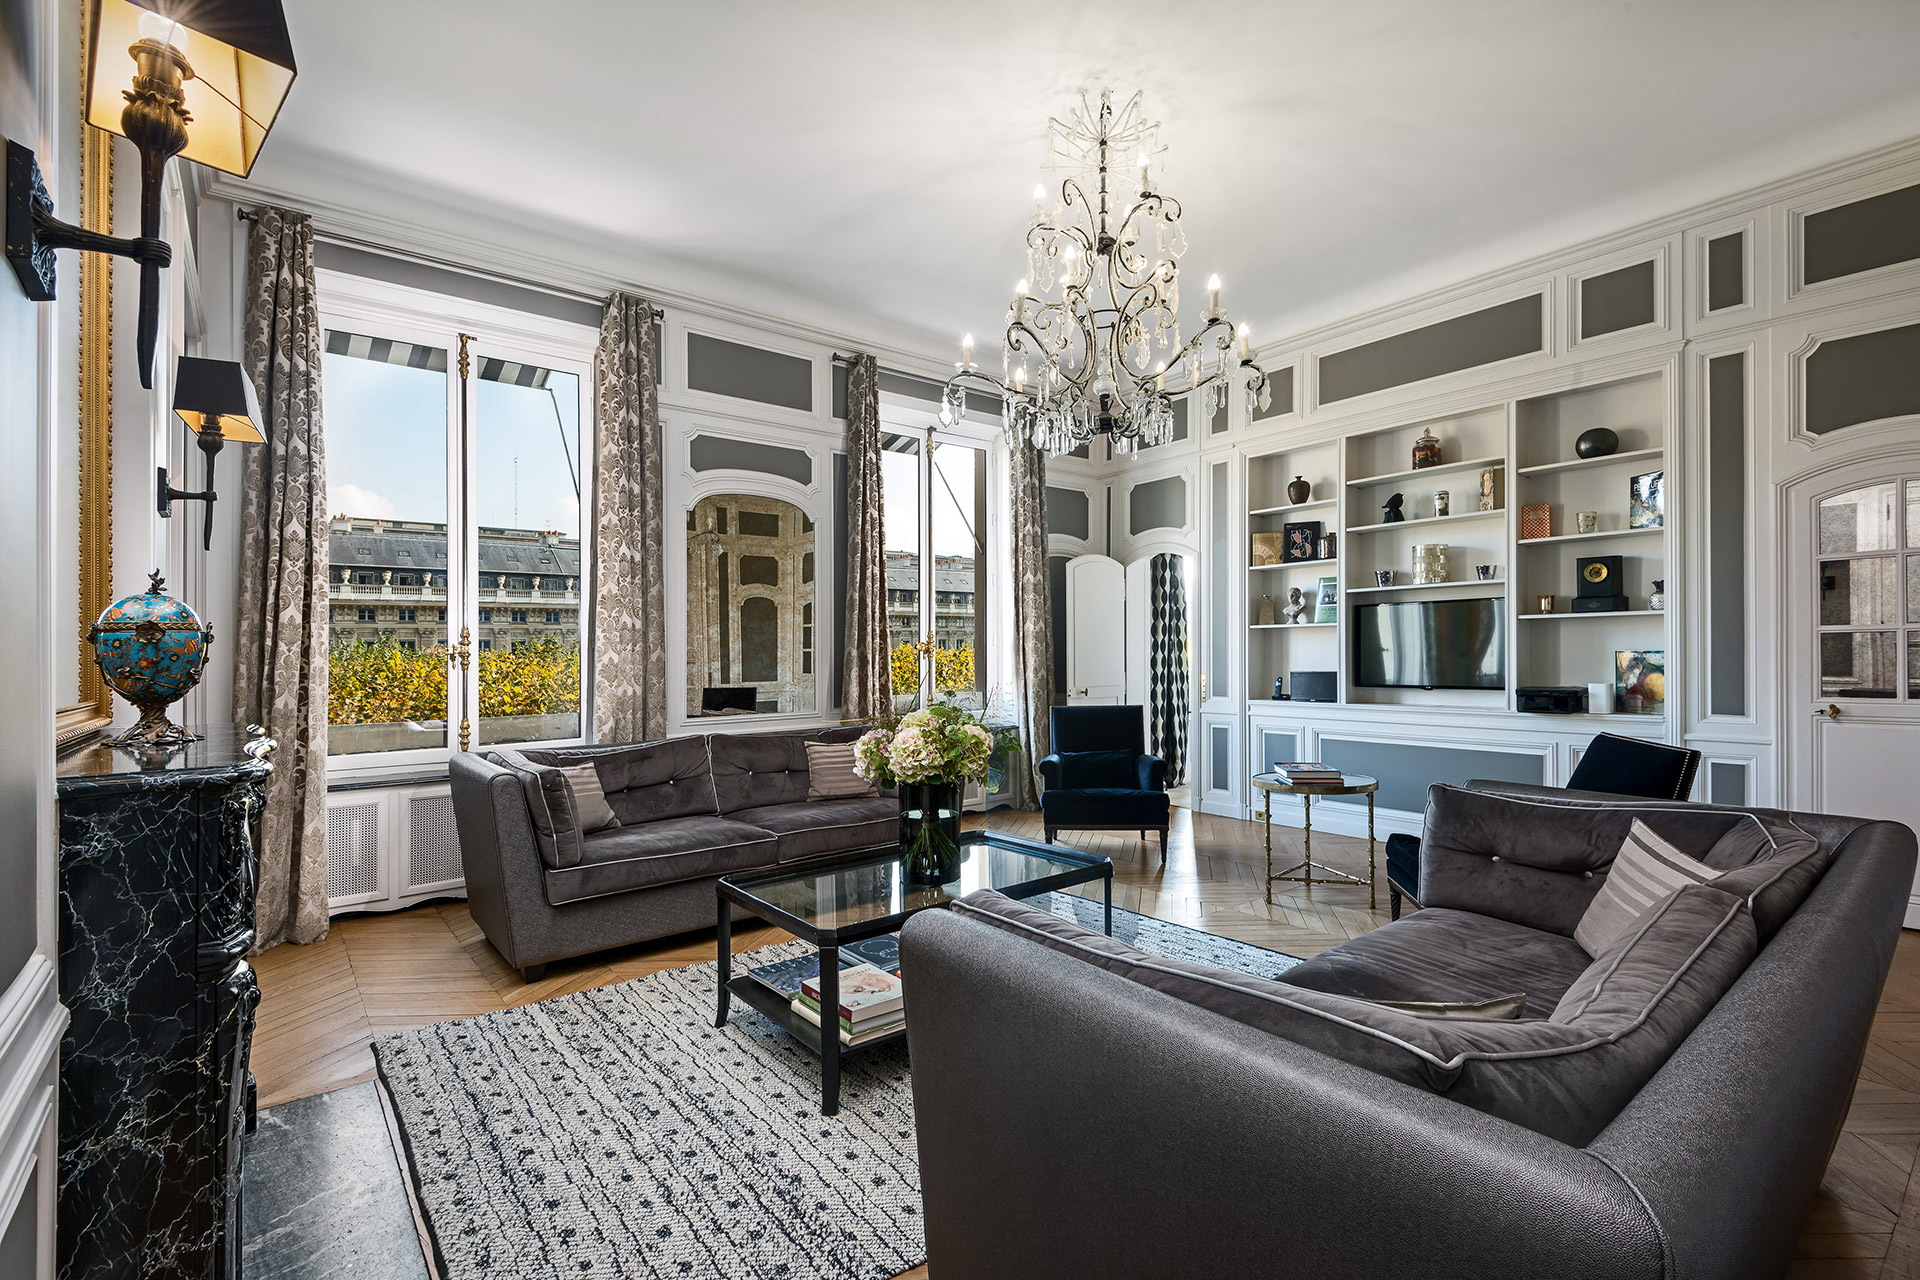 Exquisite décor in the living room of the Chopine vacation rental offered by Paris Perfect